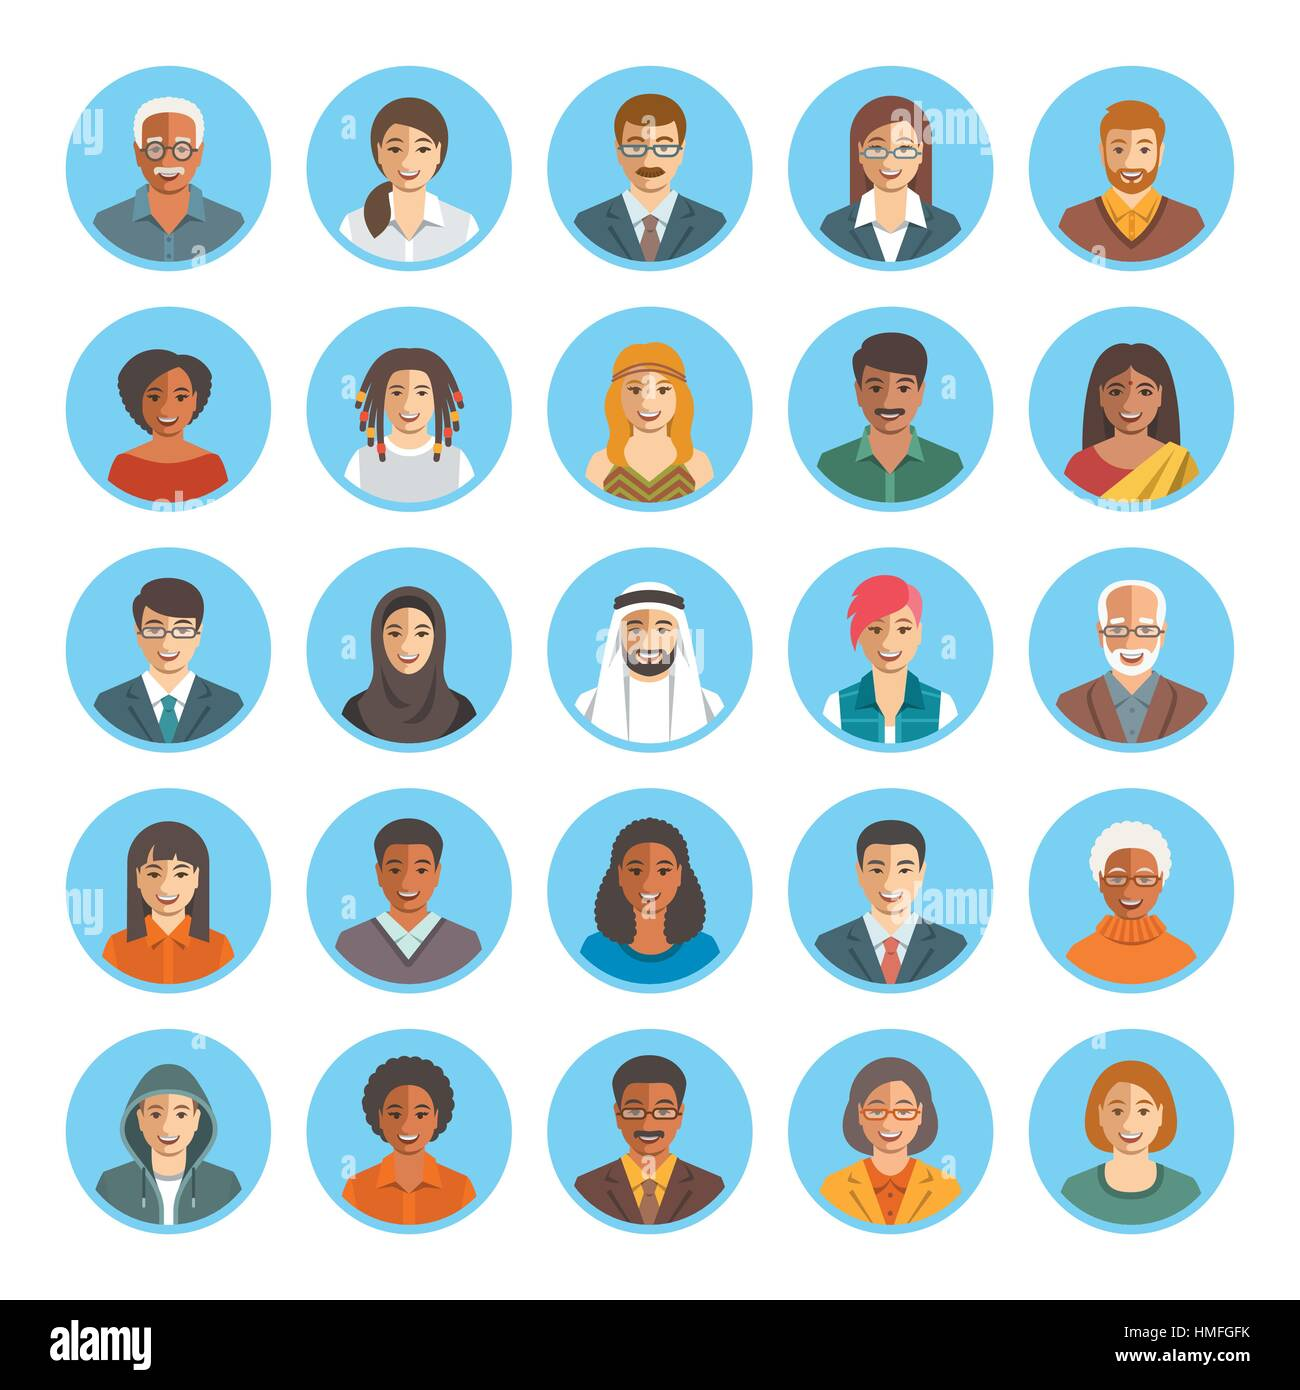 People Faces Avatars Vector Icons Flat Color Portraits Of